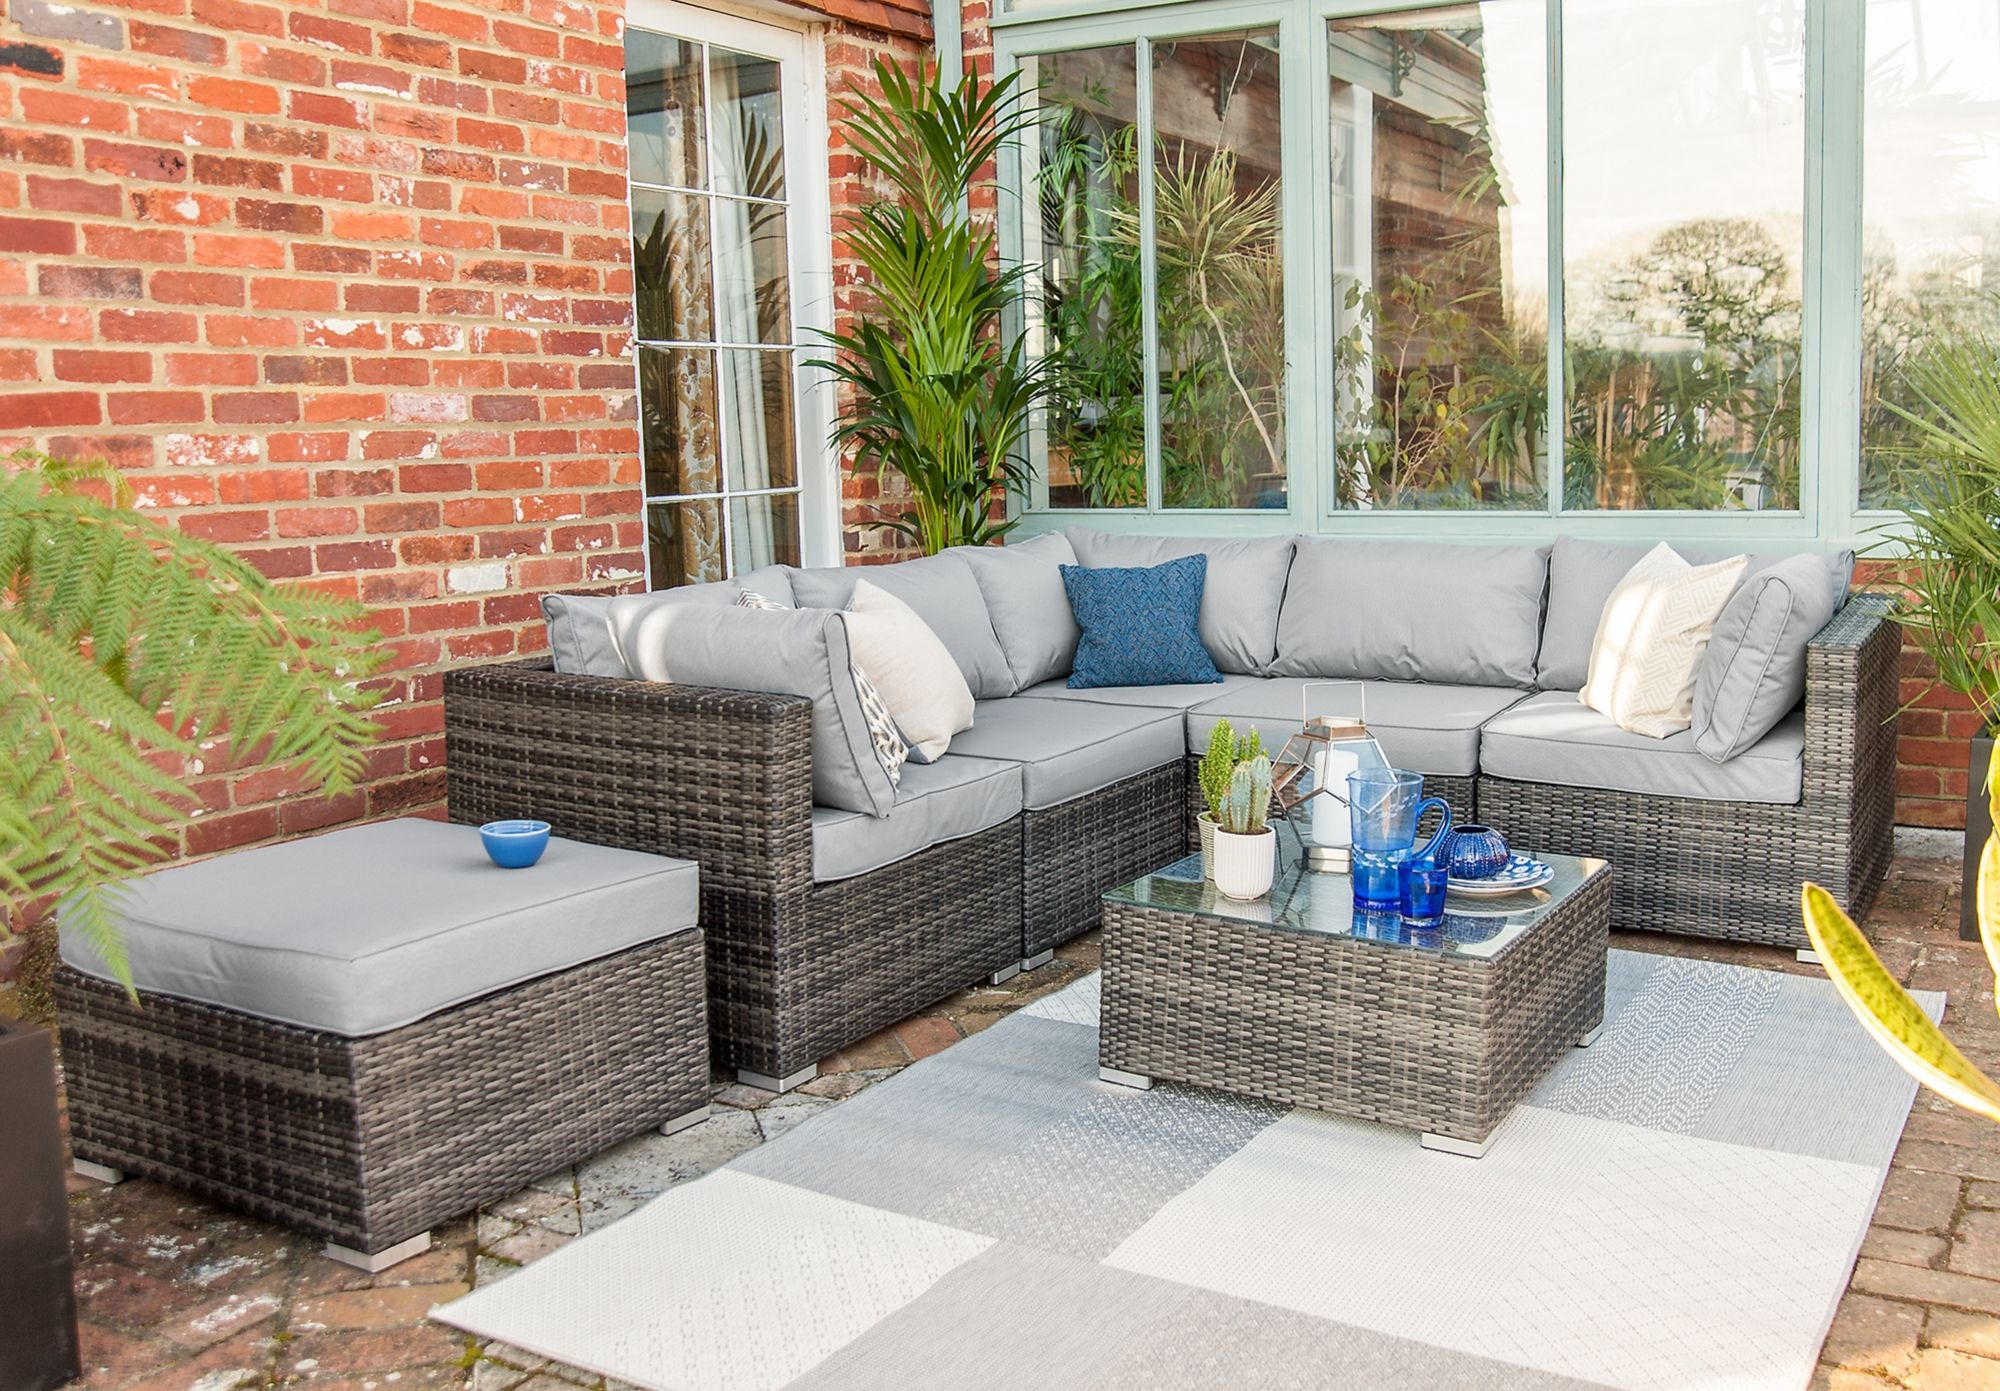 Relax and dine in comfort in conservatory or garden with